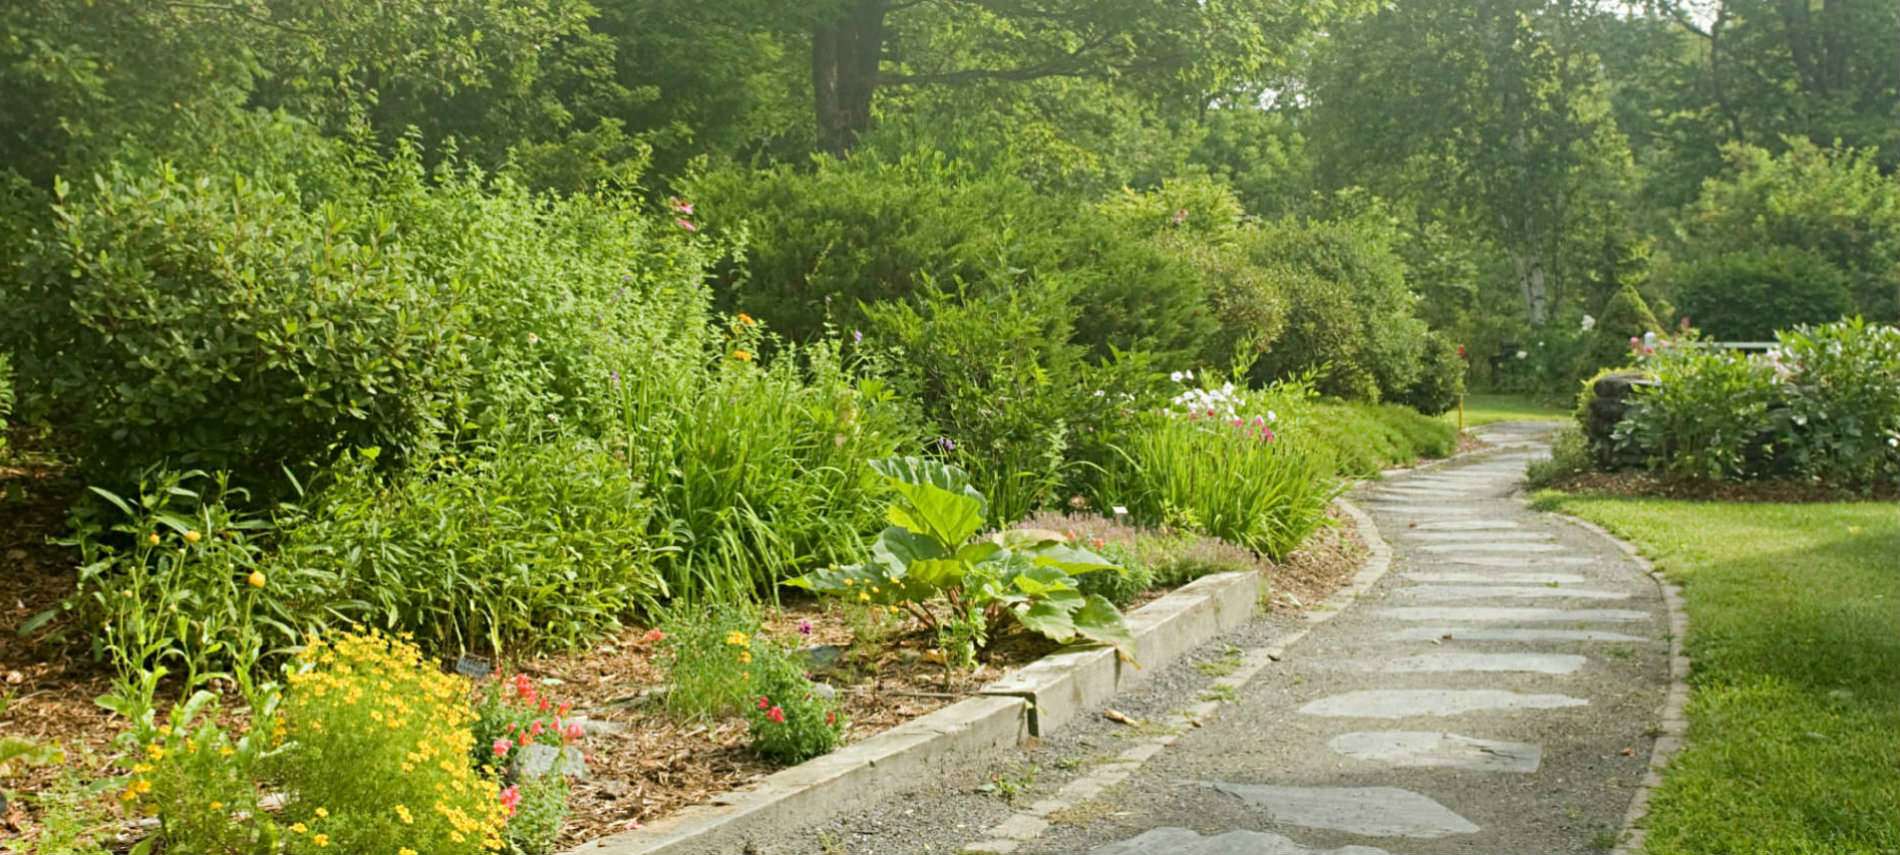 Stone path meanders through lovely curated gardens on a sunny day.